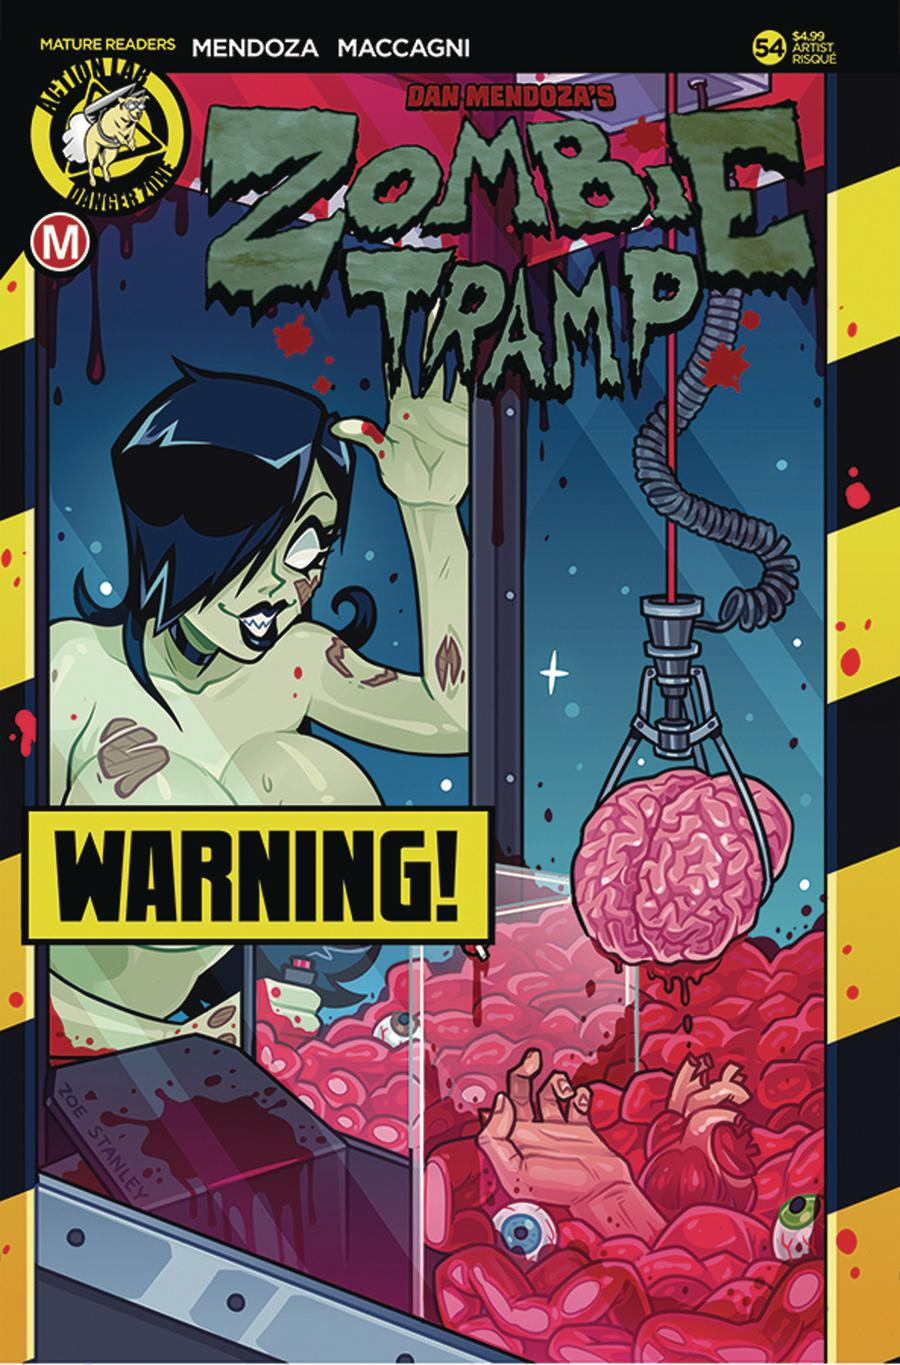 Zombie Tramp Vol 2 #54 Cover D Variant Zoe Stanley Risque Cover